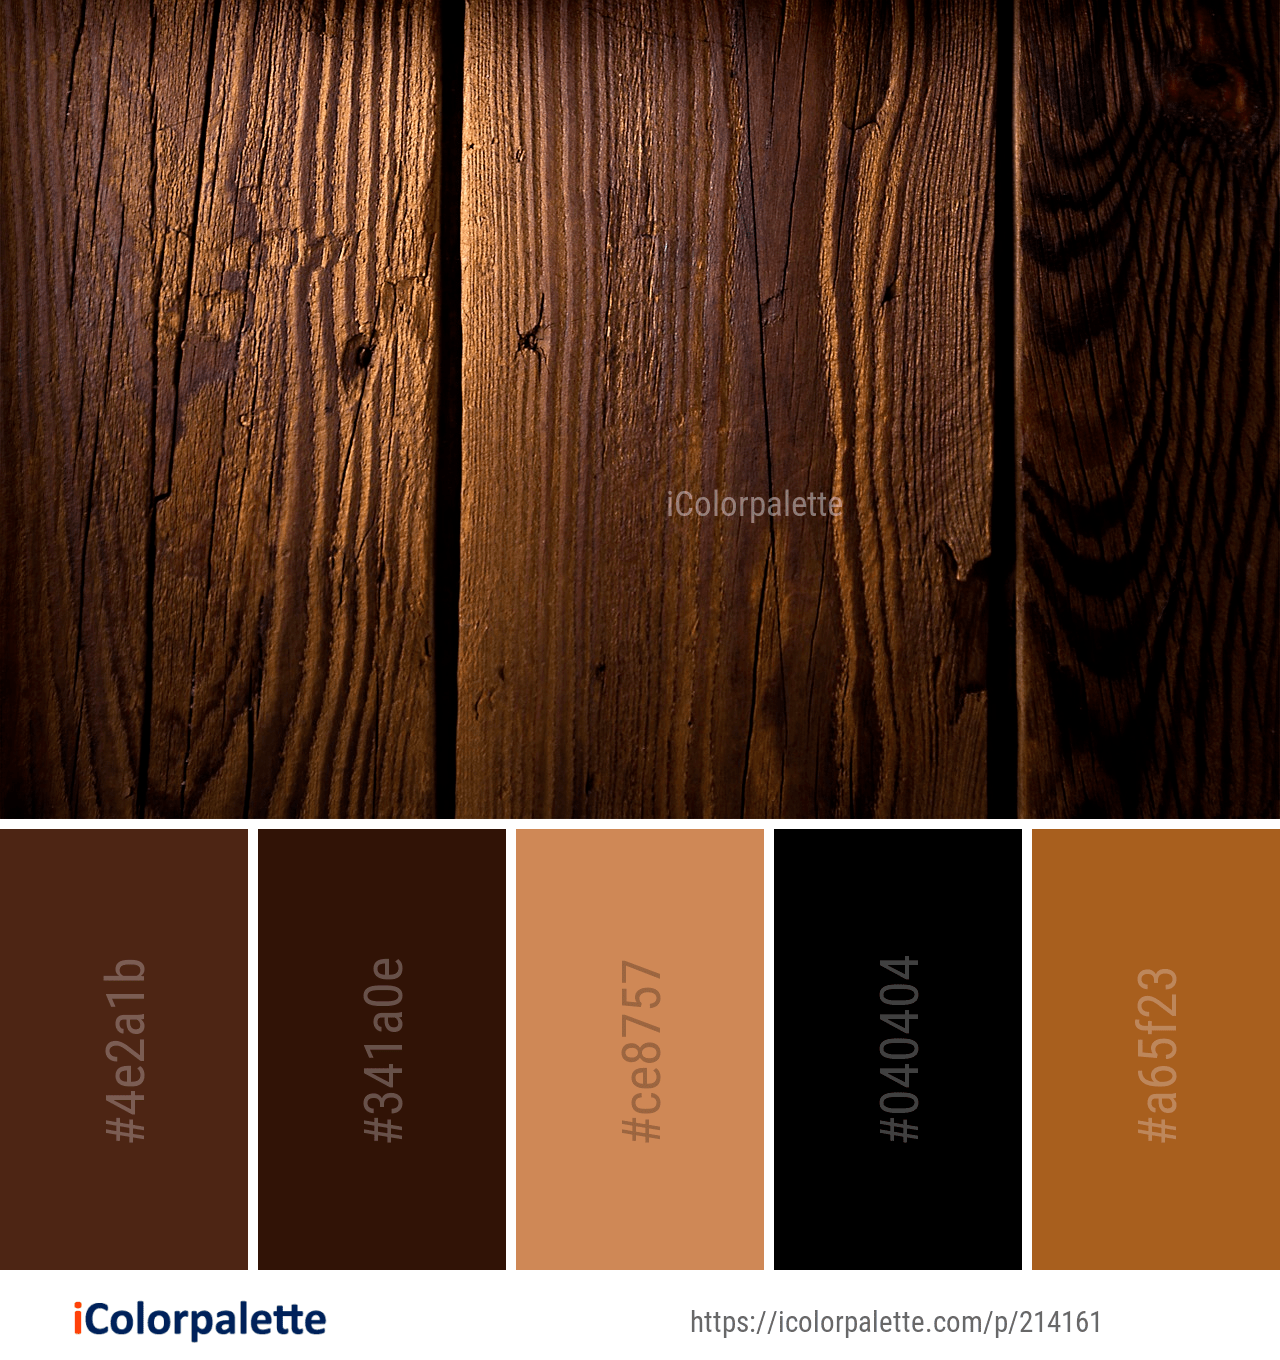 Color Palette Ideas Icolorpalette Colors Inspiration Graphics Design Inspiration Beautiful Colorpalette Pal Color Palette Staining Wood Colour Pallete